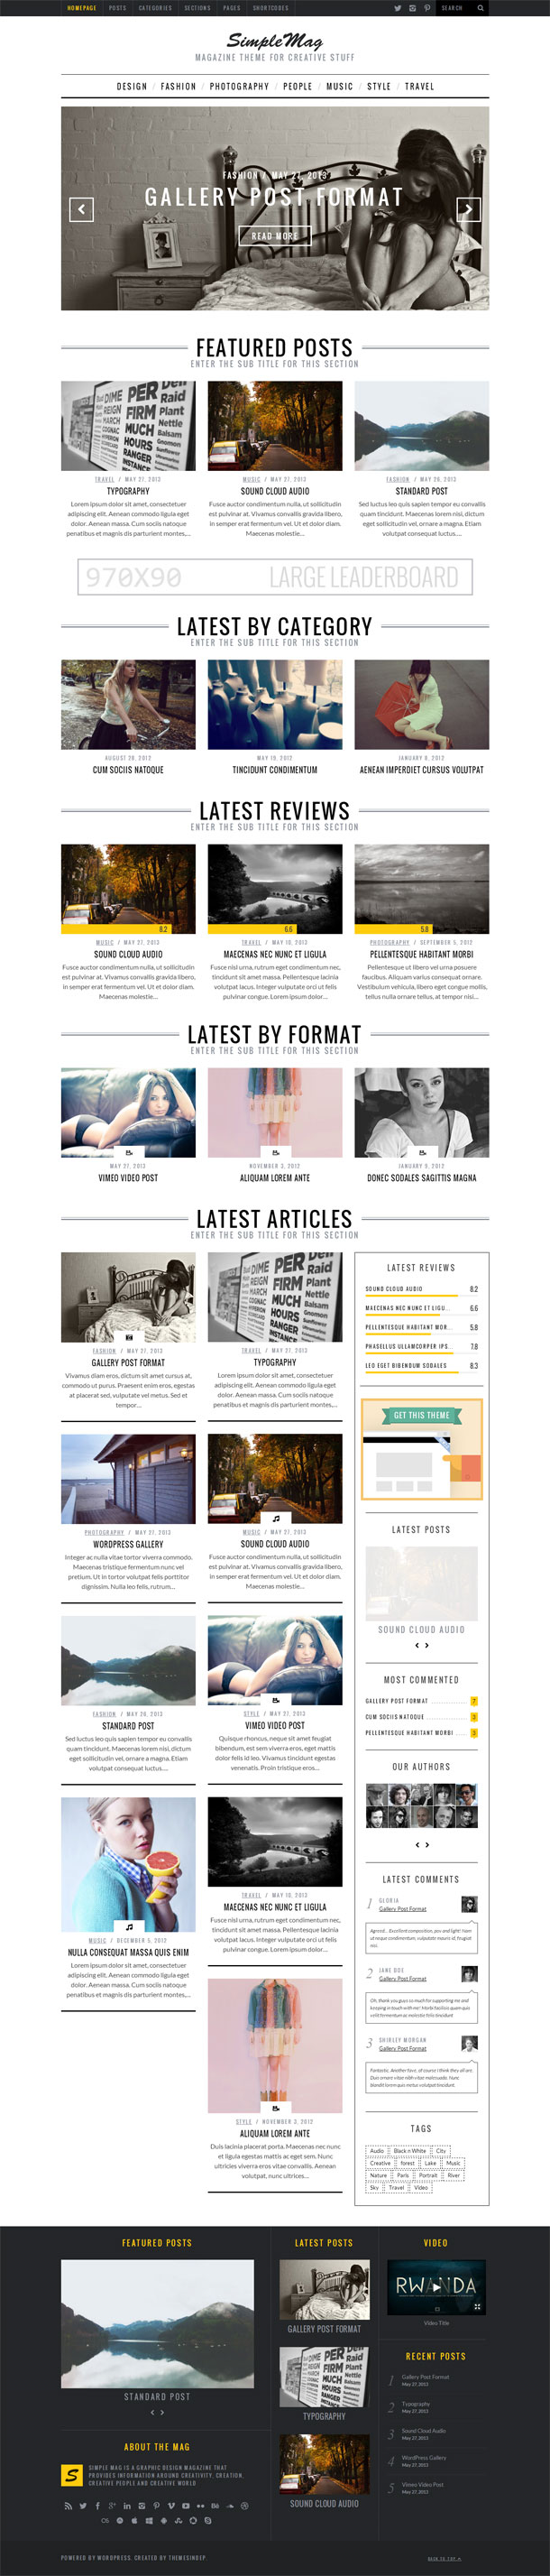 SimpleMag Great WordPress Theme for 2014 image